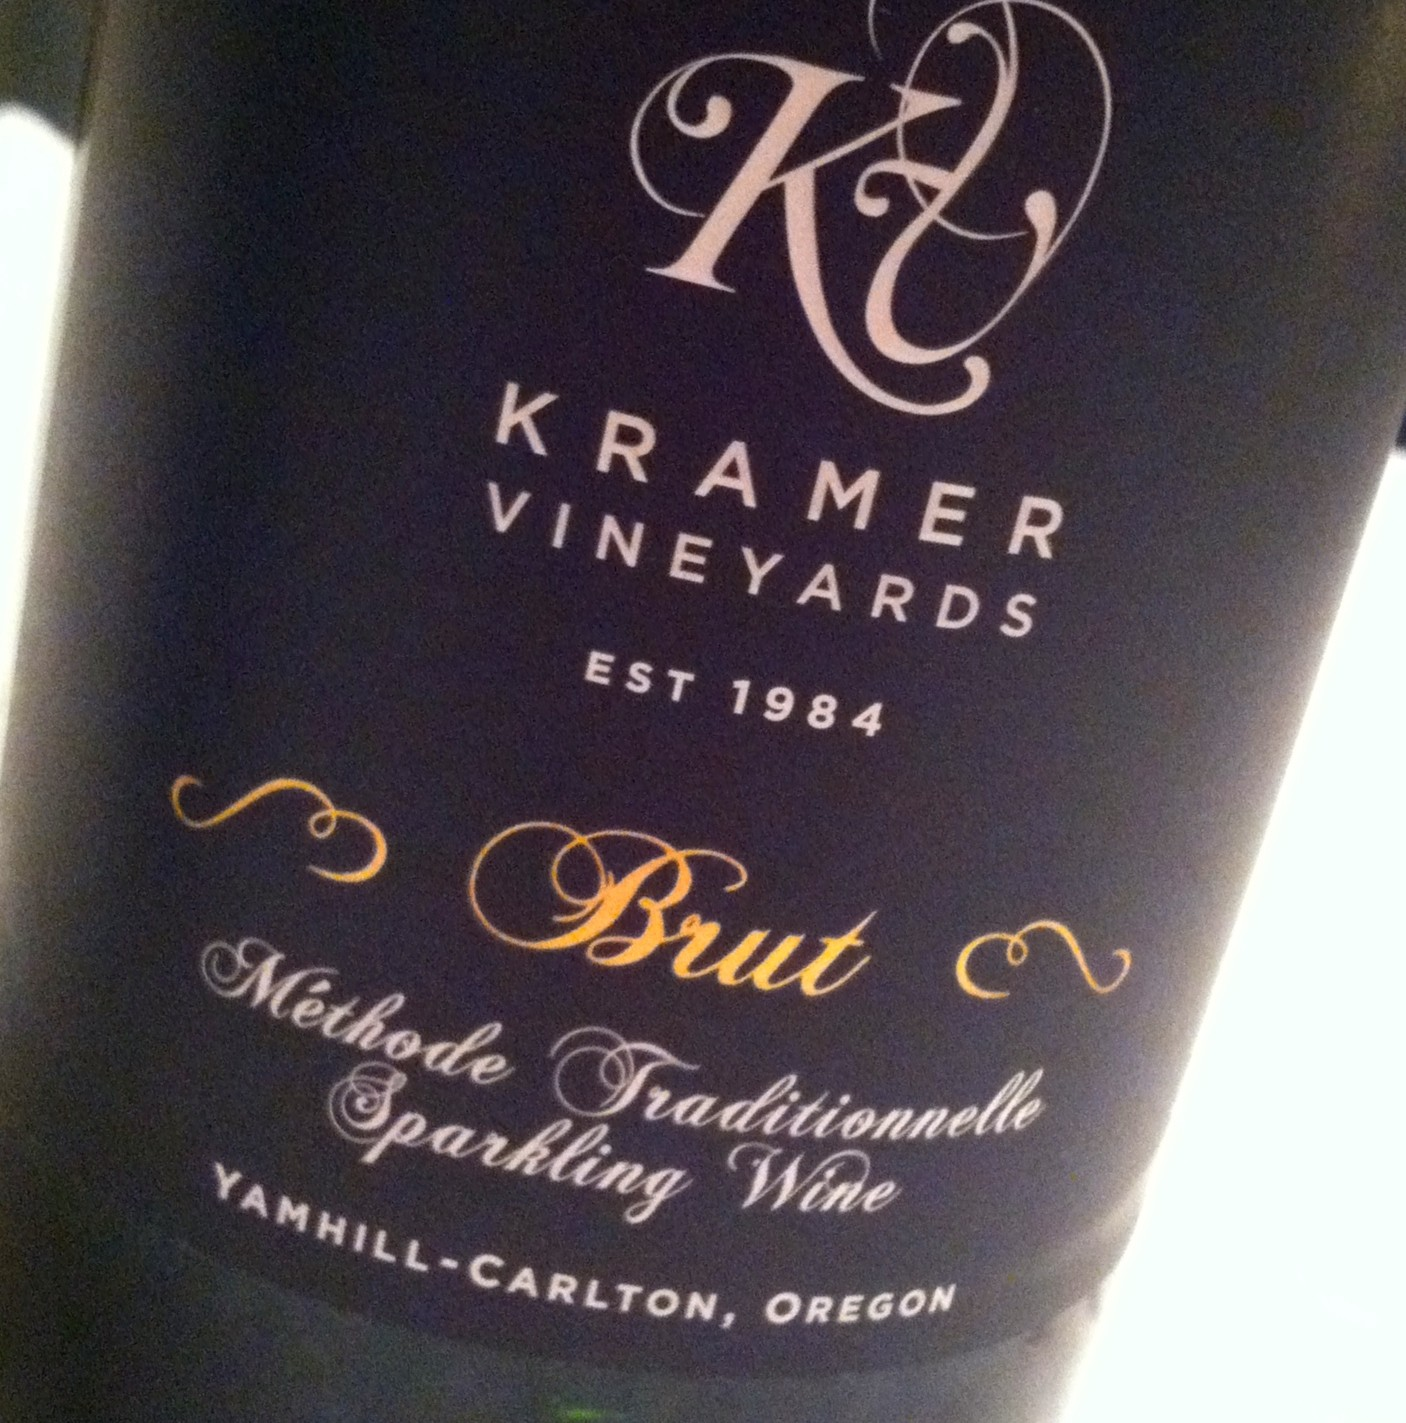 Kramer Vineyards Brut sparkling wine